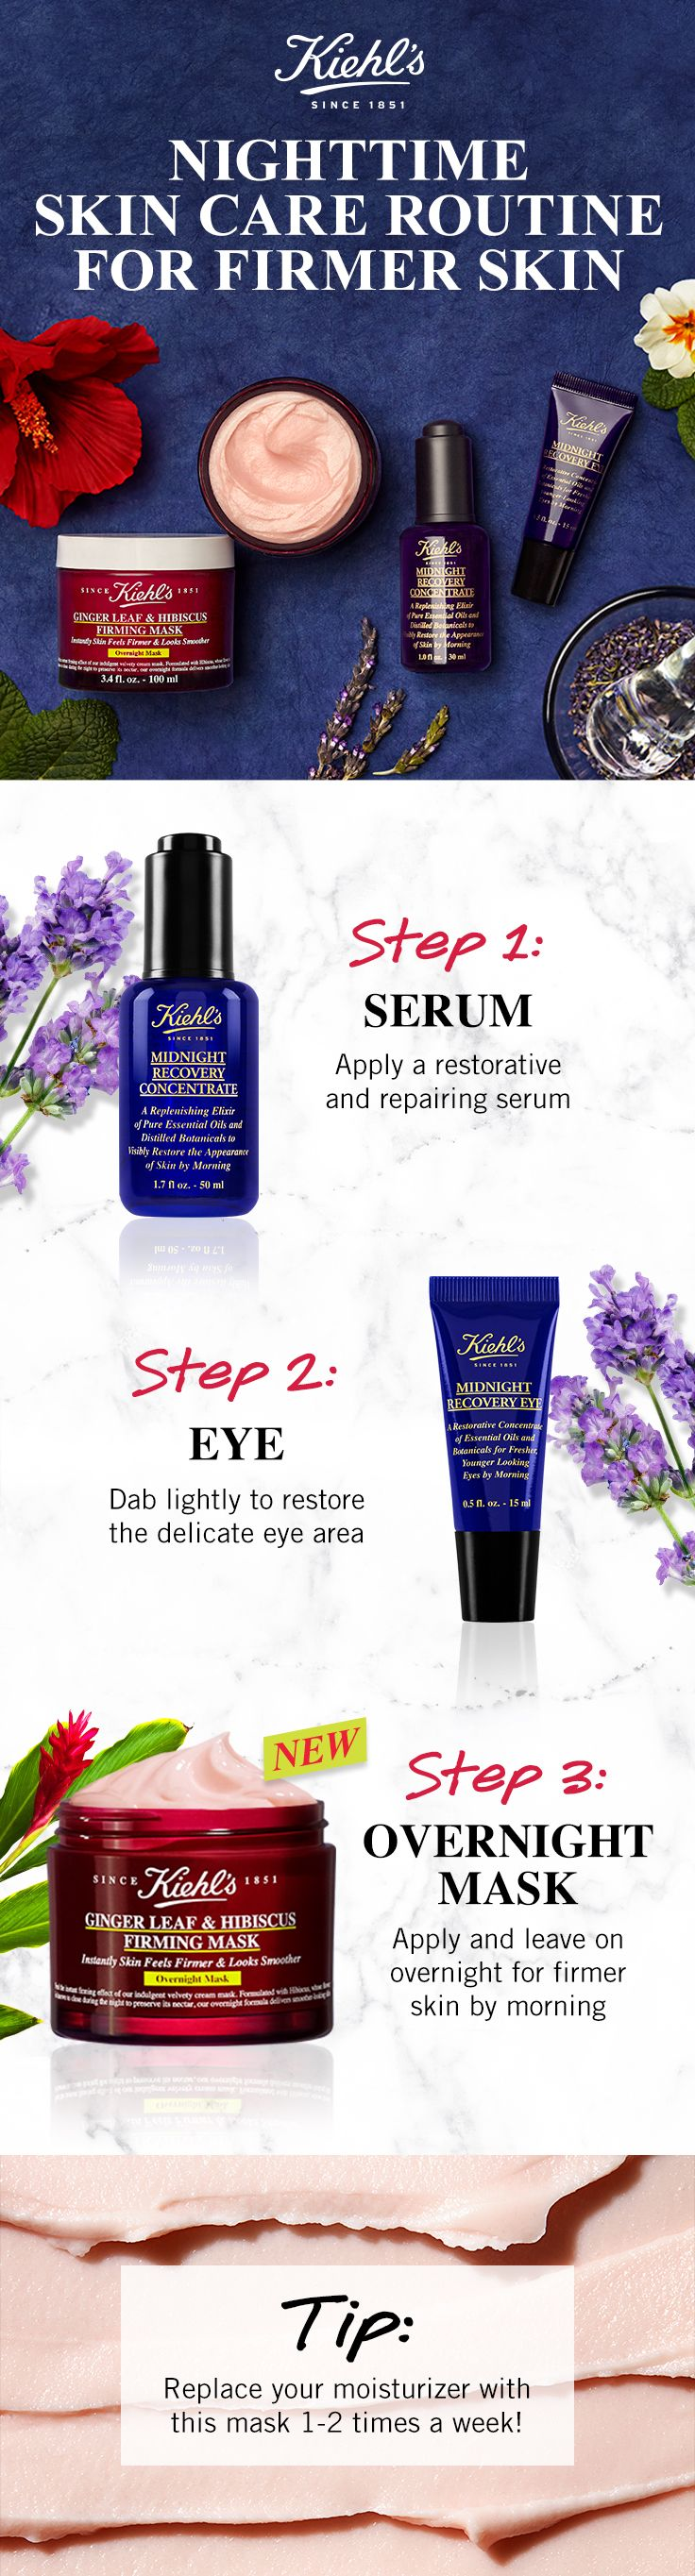 Kiehl's Overnight Firming Mask is the next step in your night-time anti-aging skin care routine. Use after your serum and eye cream for firm, youthful skin. Replace your moisturizer with this mask 1-2 times per week for smooth, youthful skin.